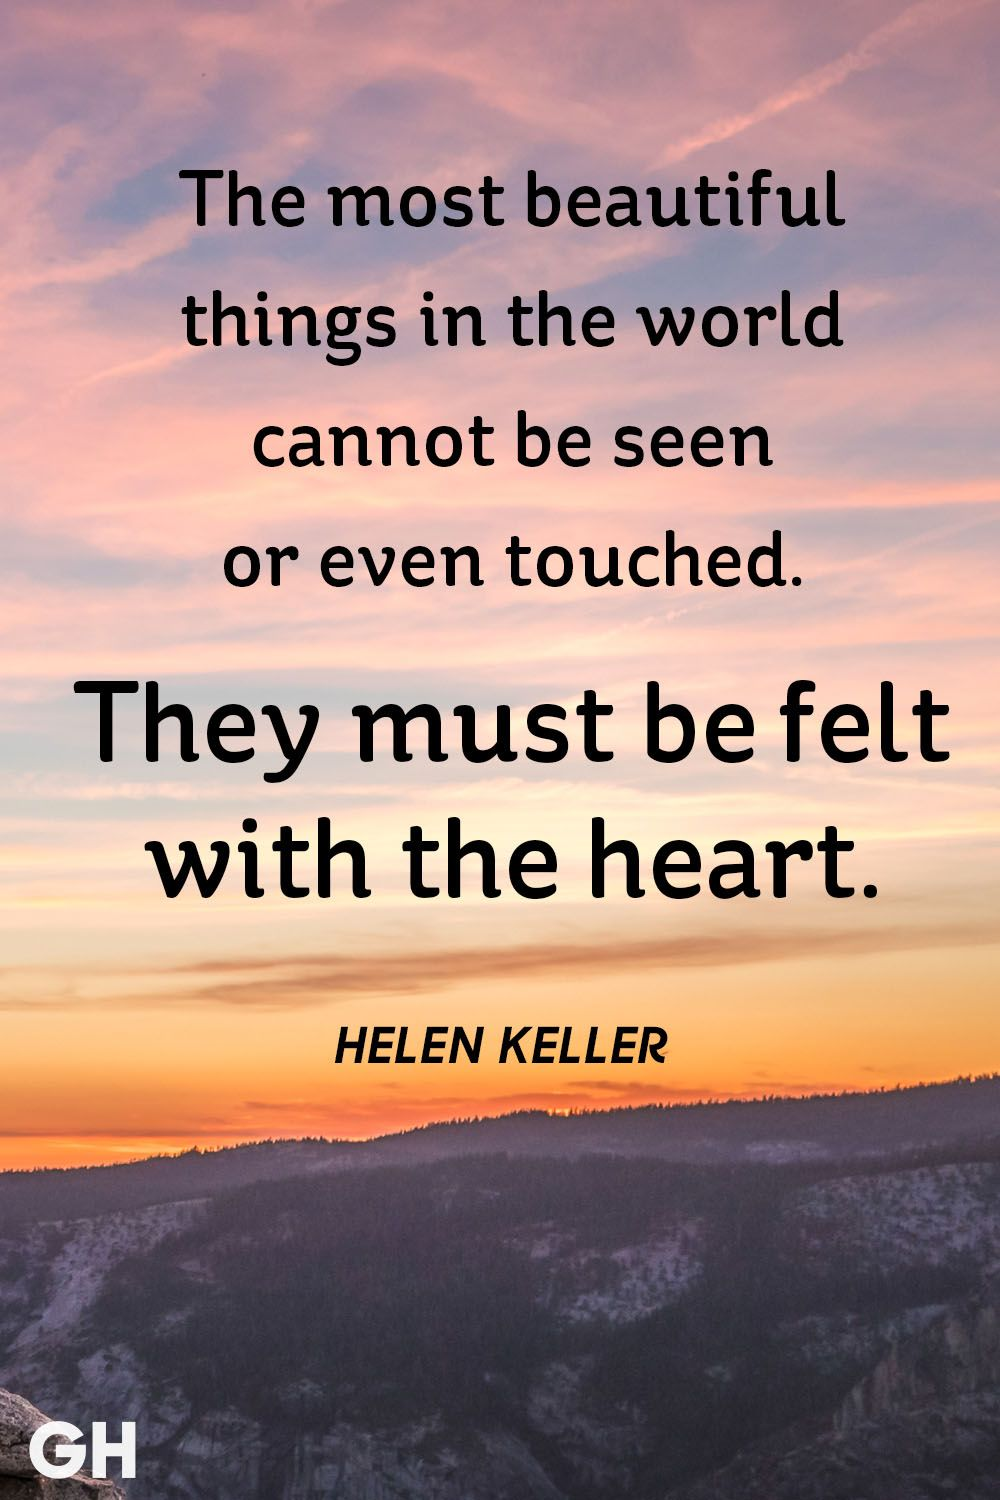 Image of: Inspirational Quotes Helen Keller Beautiful Life Quote Goodnet 30 Inspirational Quotes About Life Beautiful Famous Life Quotes